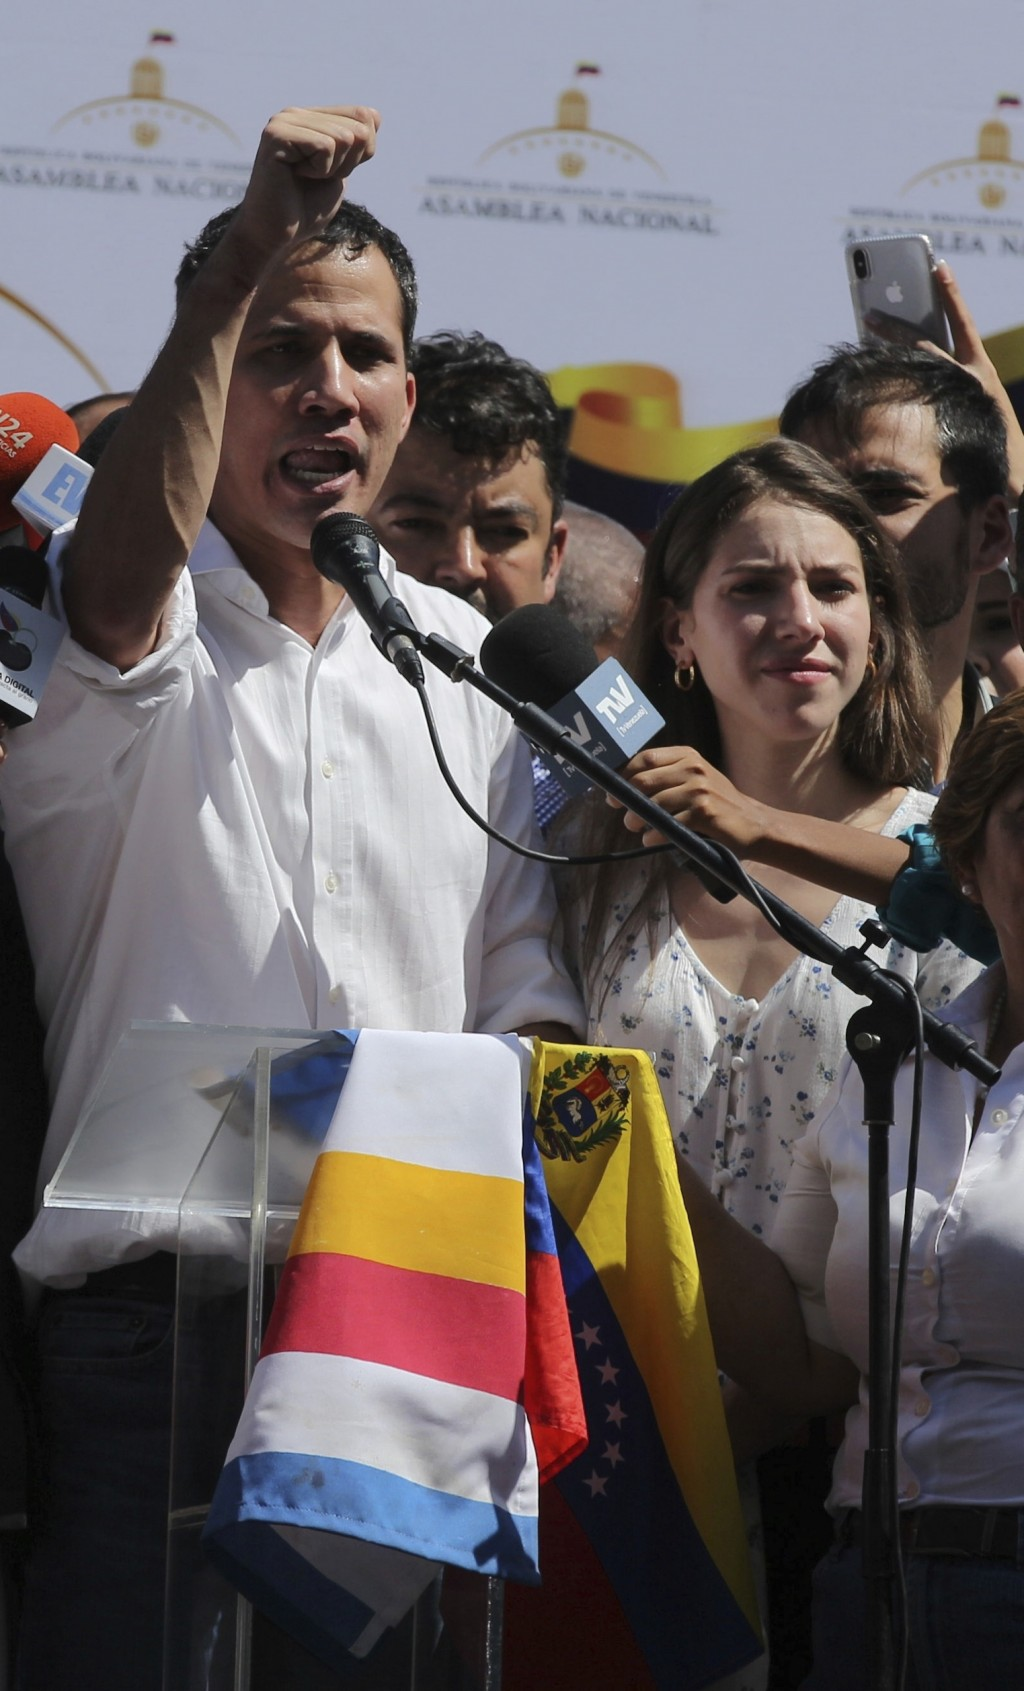 Juan Guaido, president of National Assembly, shows marks on his wrists which he says are from handcuffs, to supporters at a rally in Caraballeda, Vene...